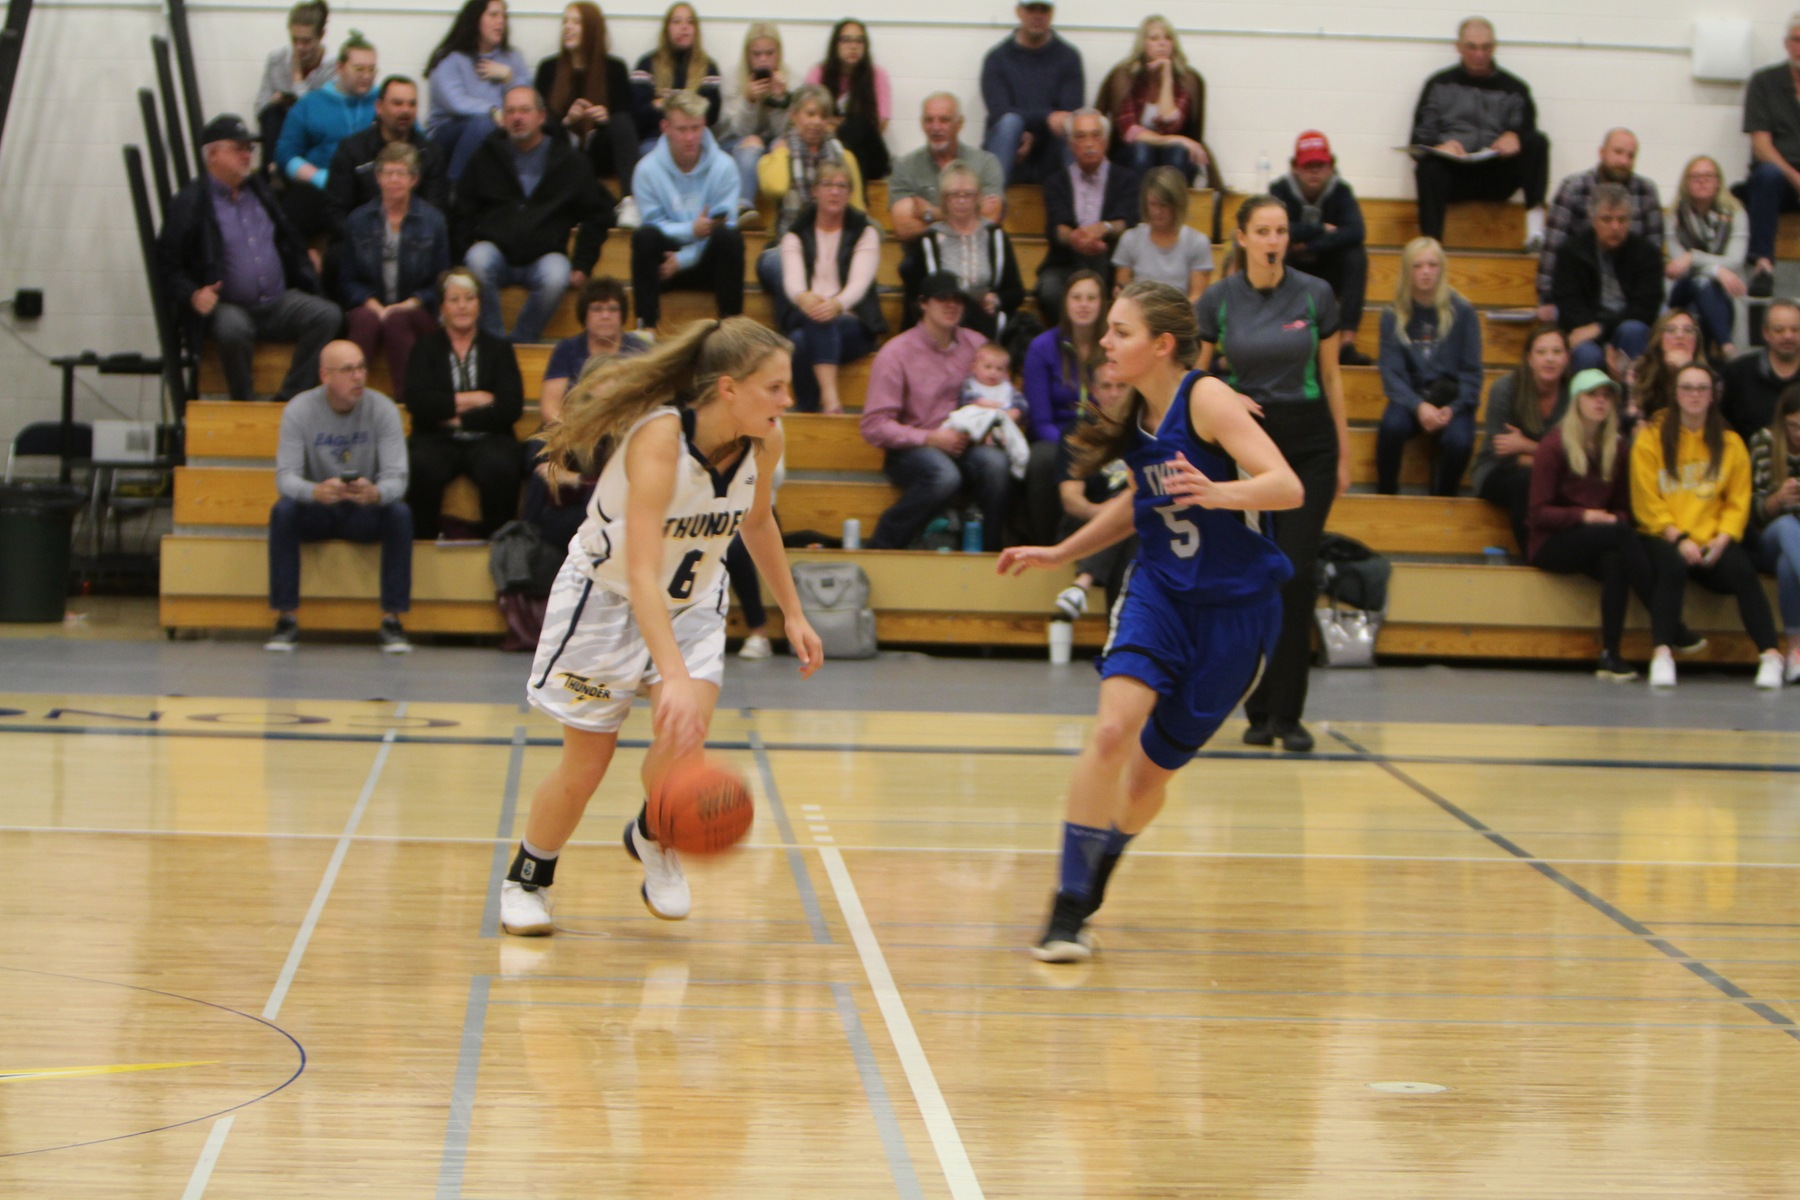 Thunder lose home opener against visiting Eagles